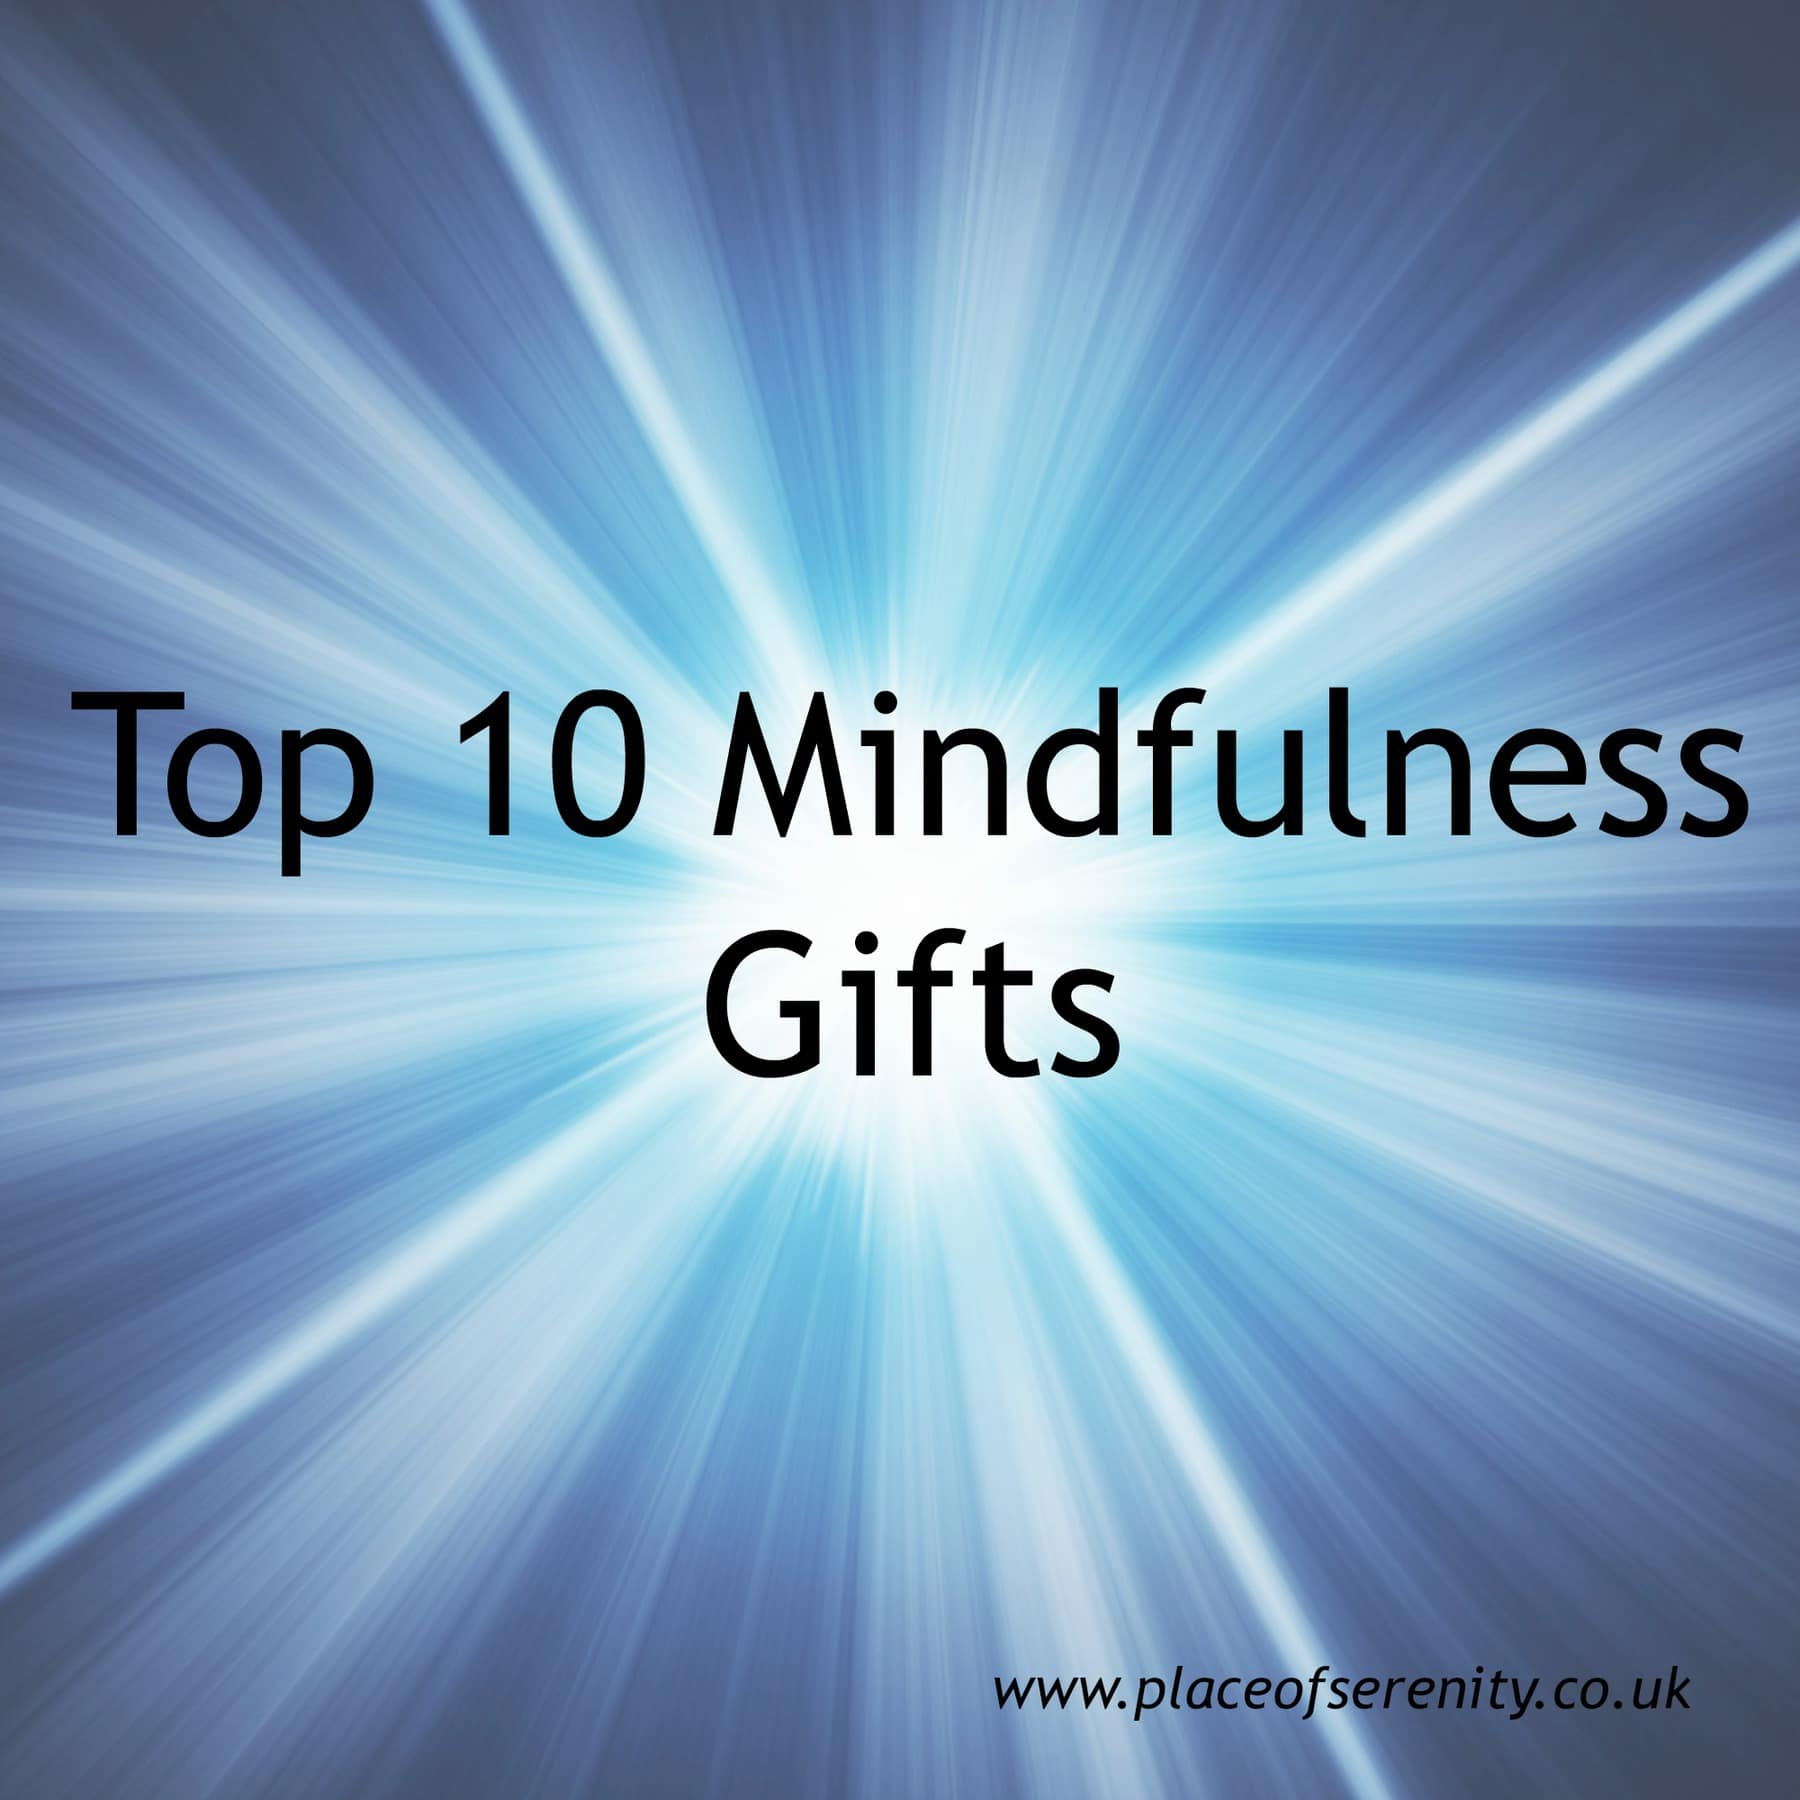 Coyk: Top 10 Mindfulness Gifts